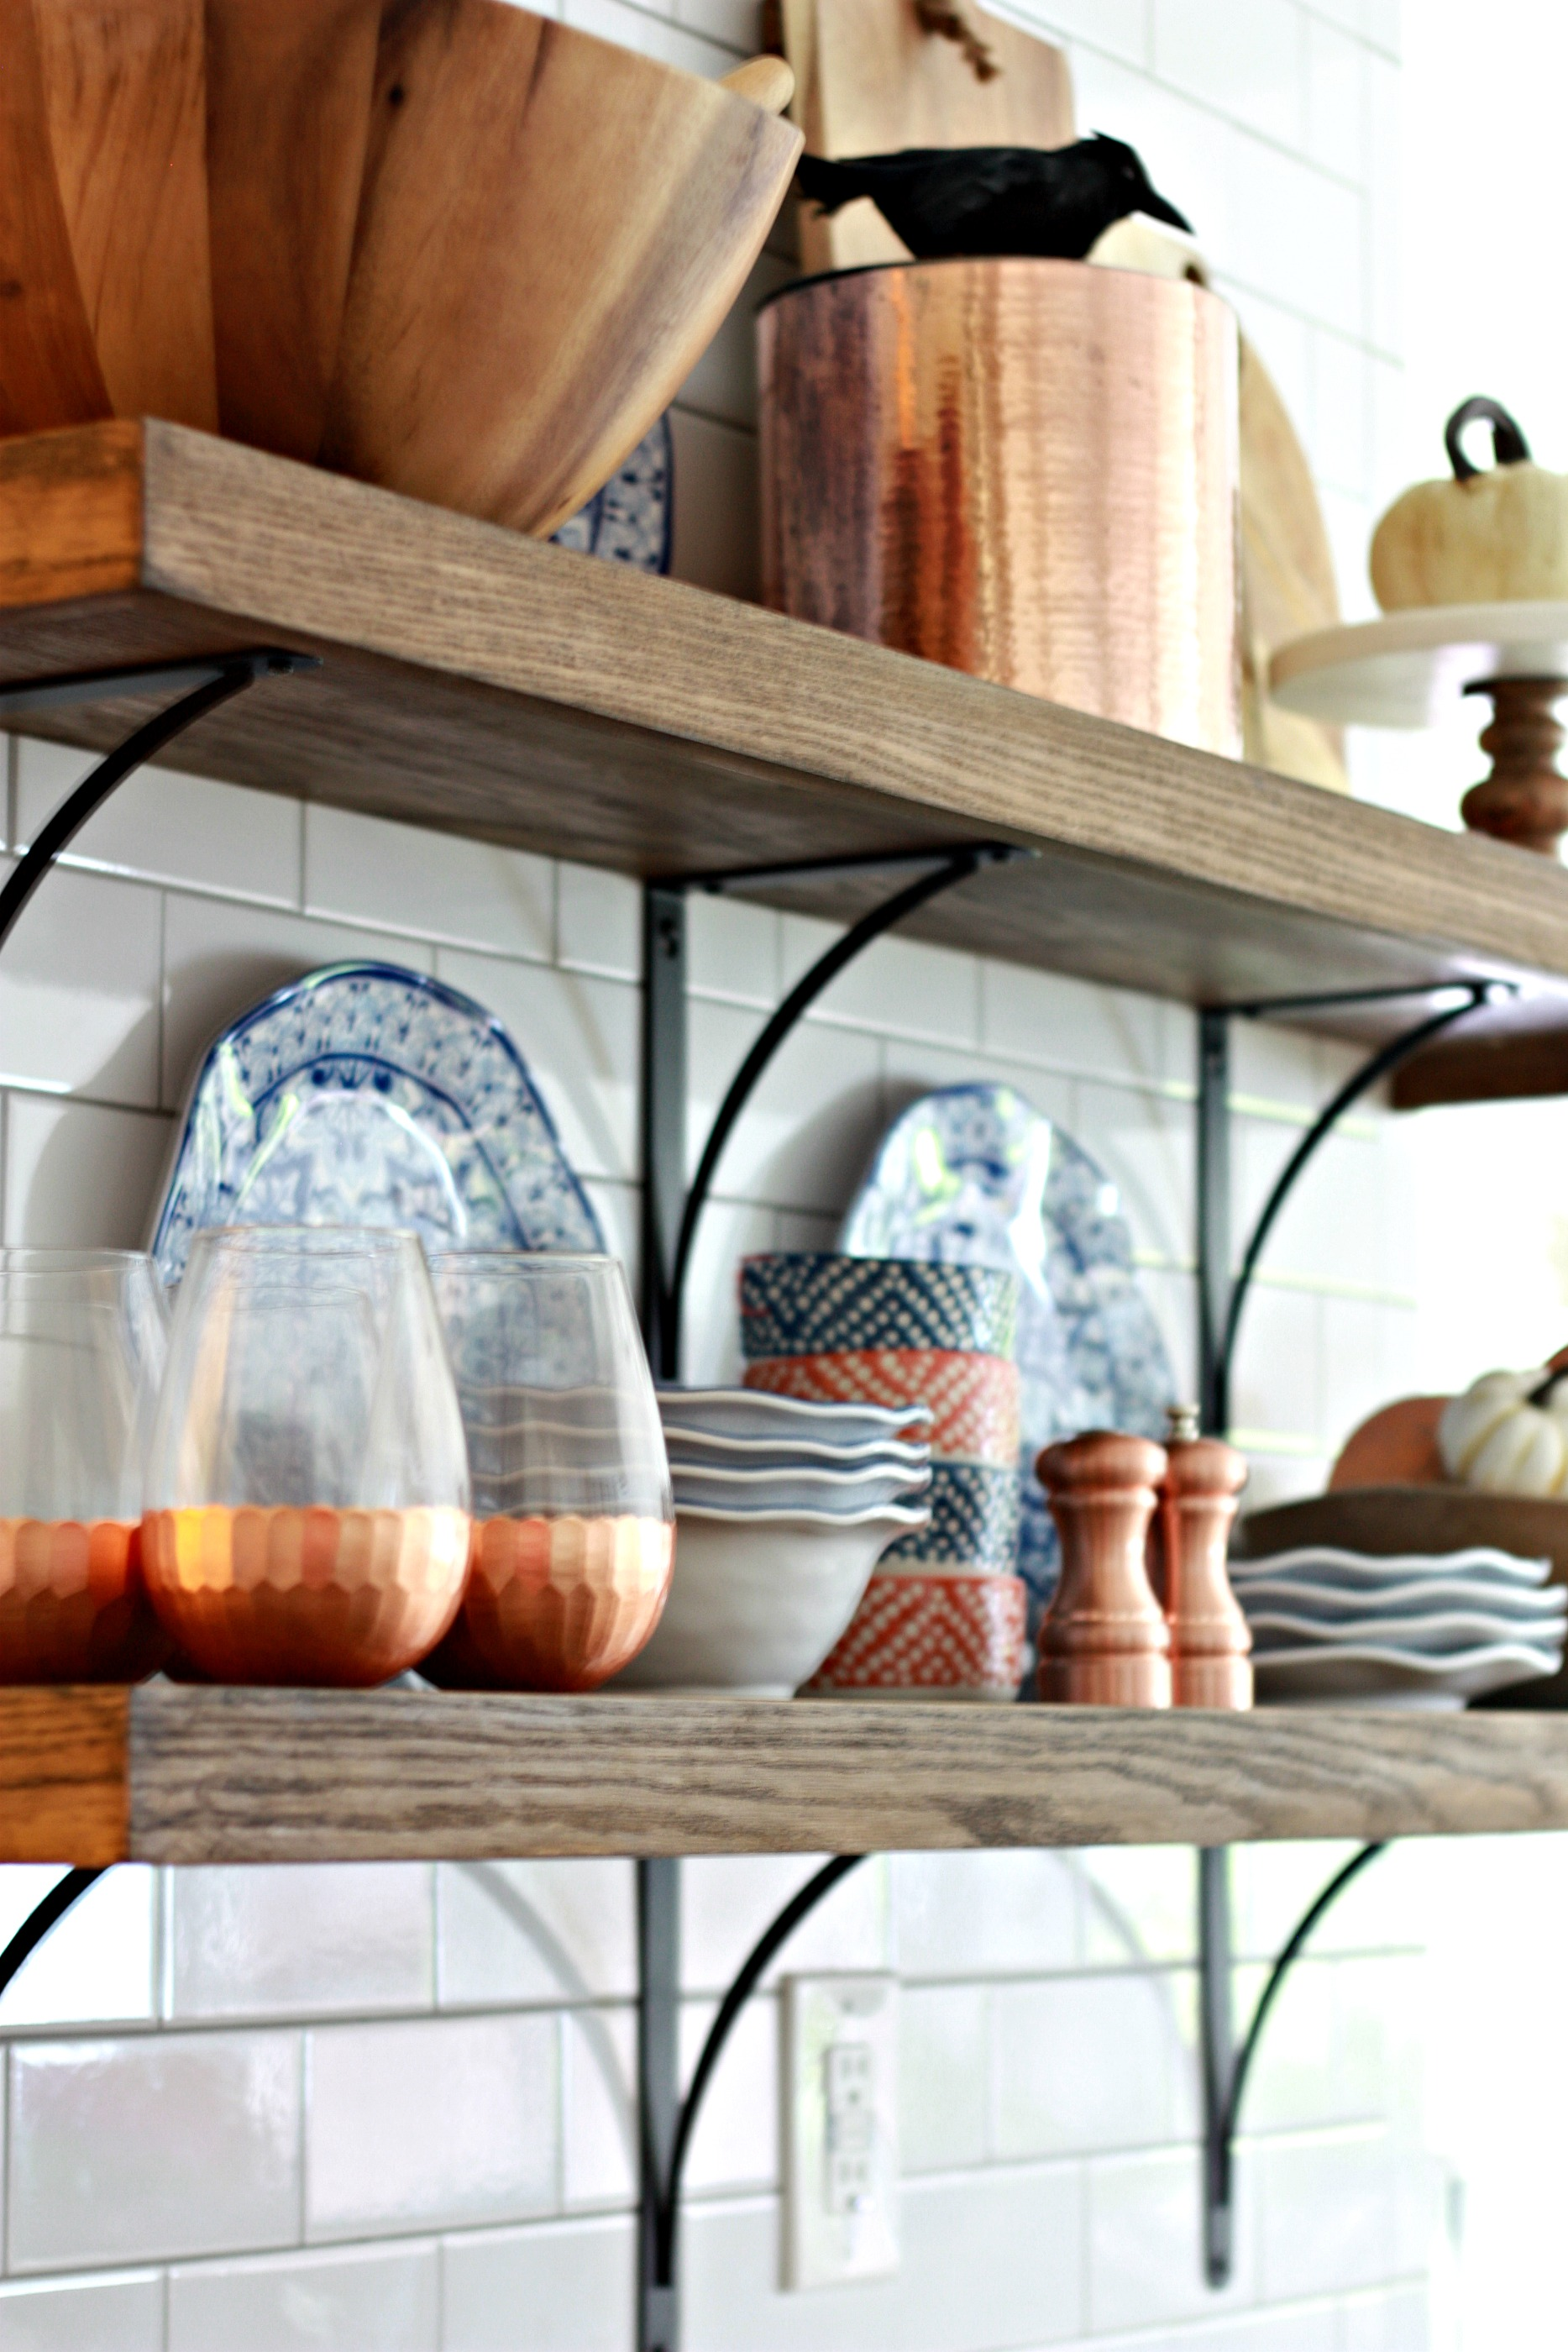 Adding Fall Decor to our Open Shelving in the Kitchen